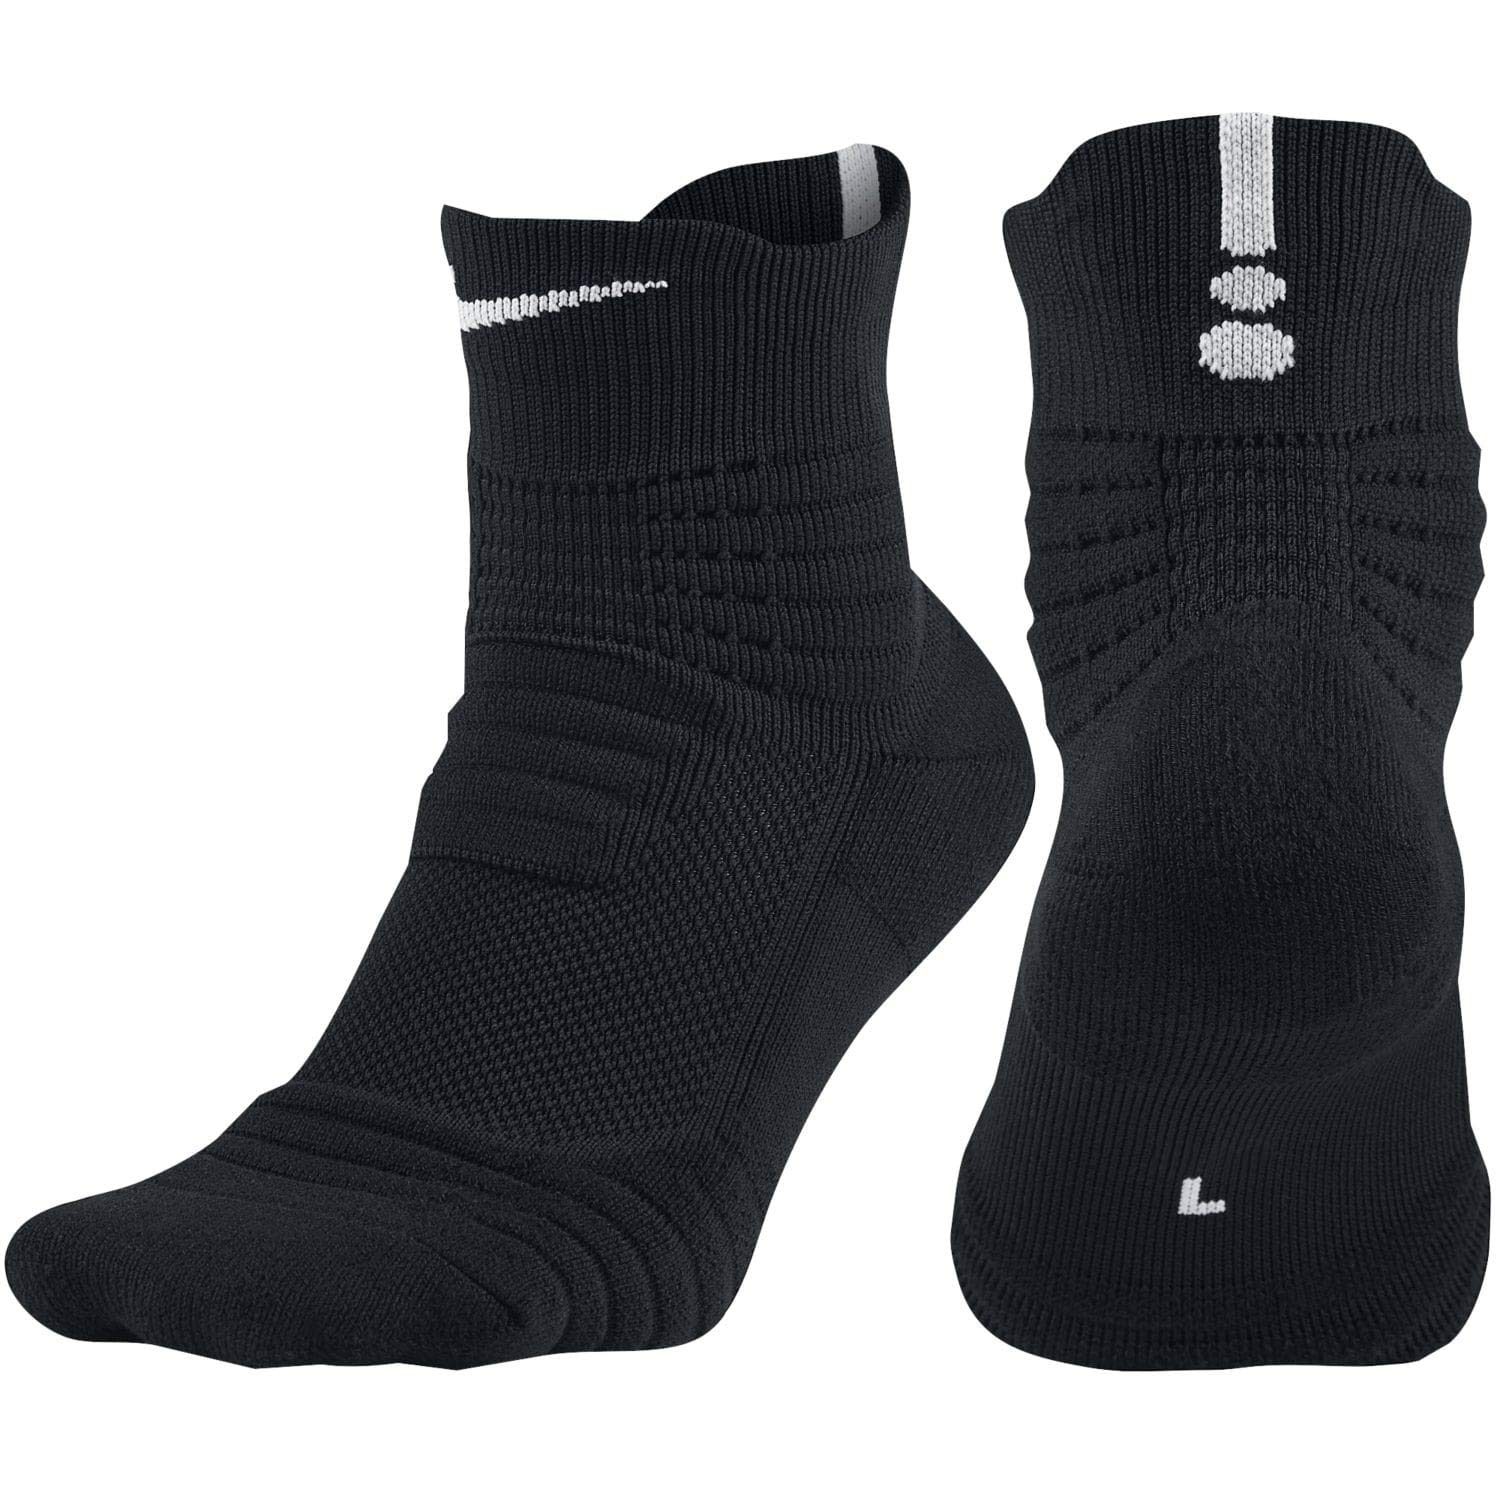 Socks Nike Elite Versatility Mid Basketball Sock Basketball